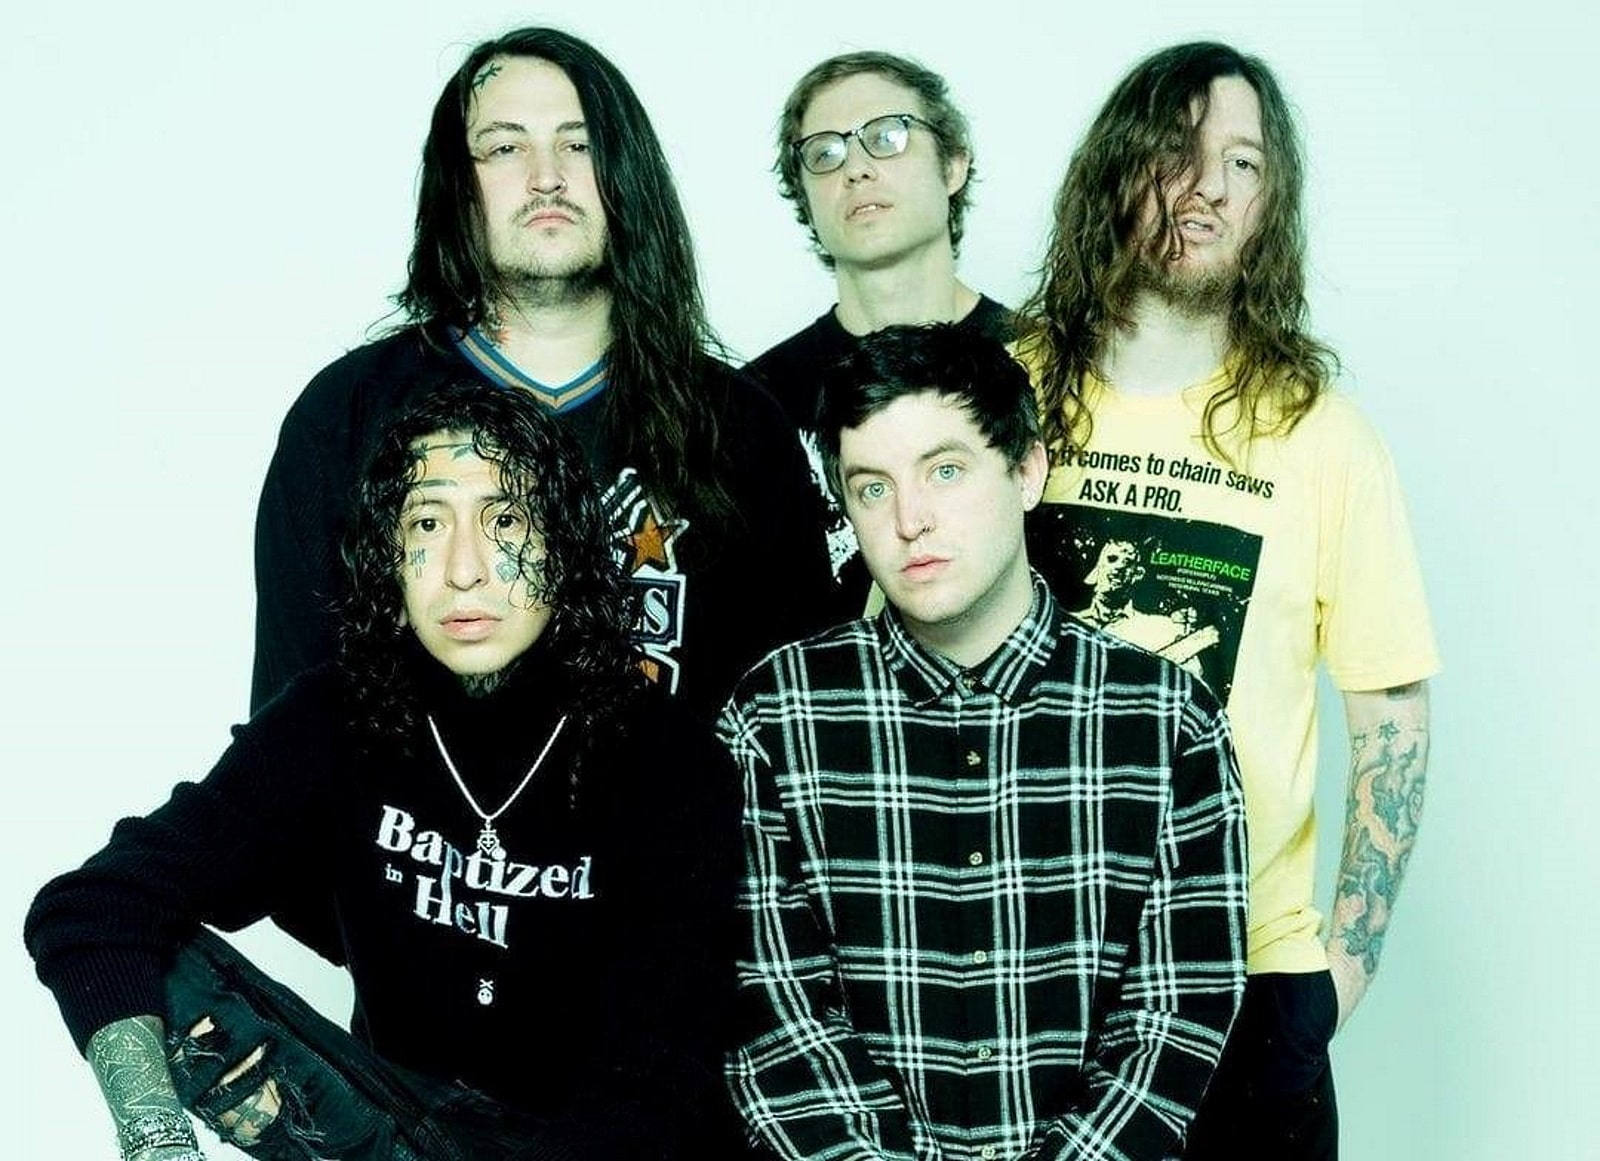 IF I DIE FIRST band